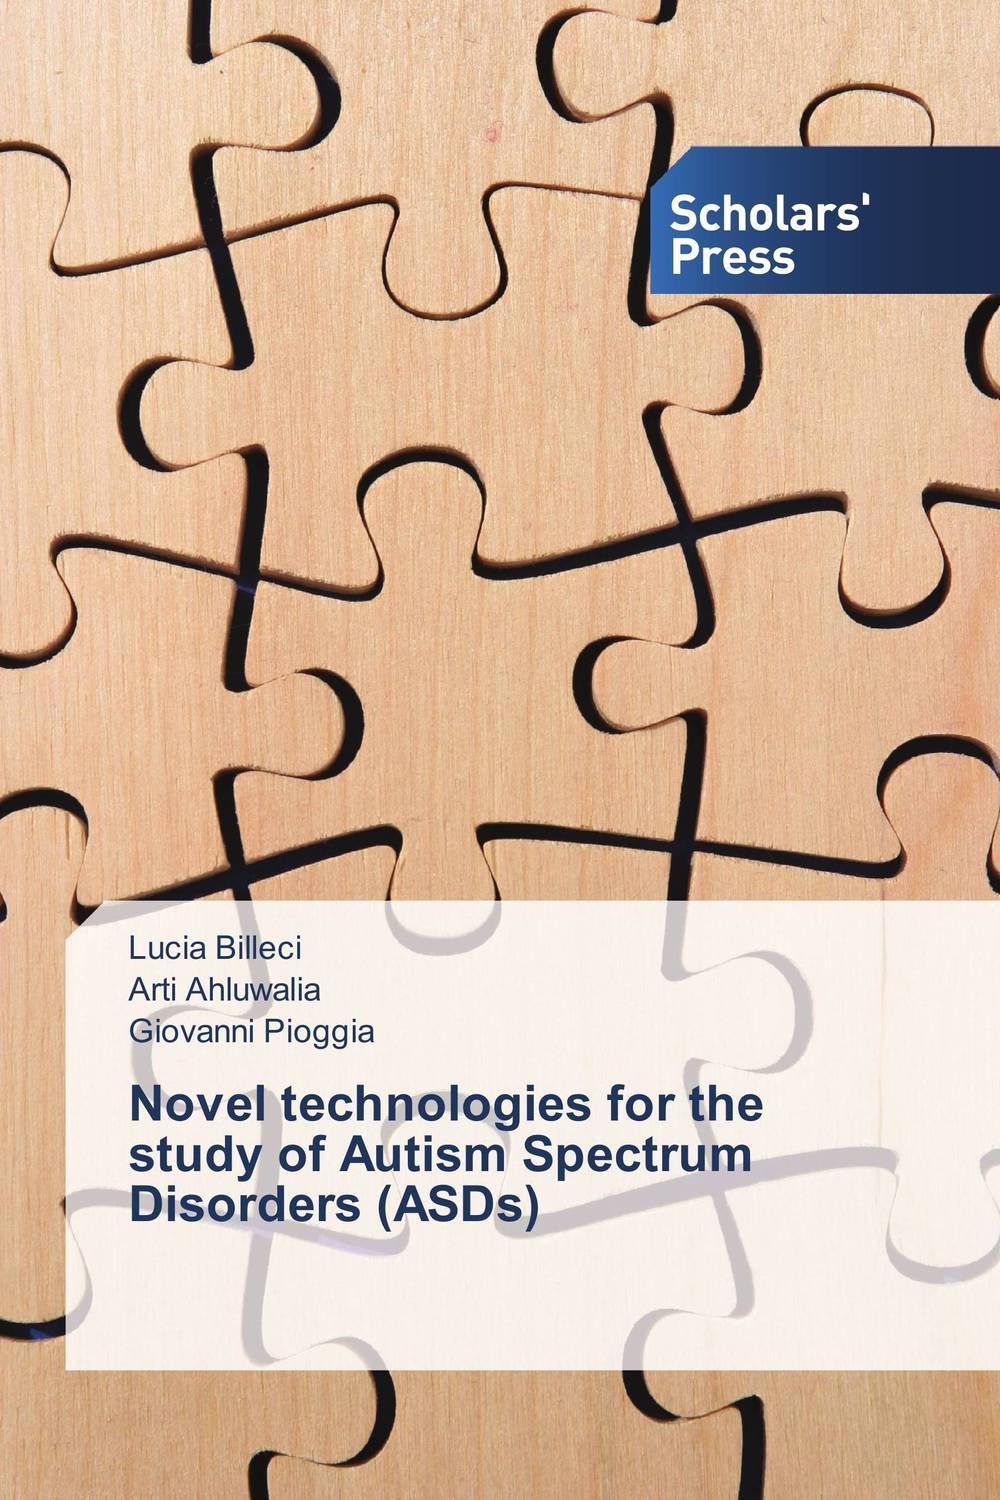 Novel technologies for the study of Autism Spectrum Disorders (ASDs) psychiatric disorders in postpartum period